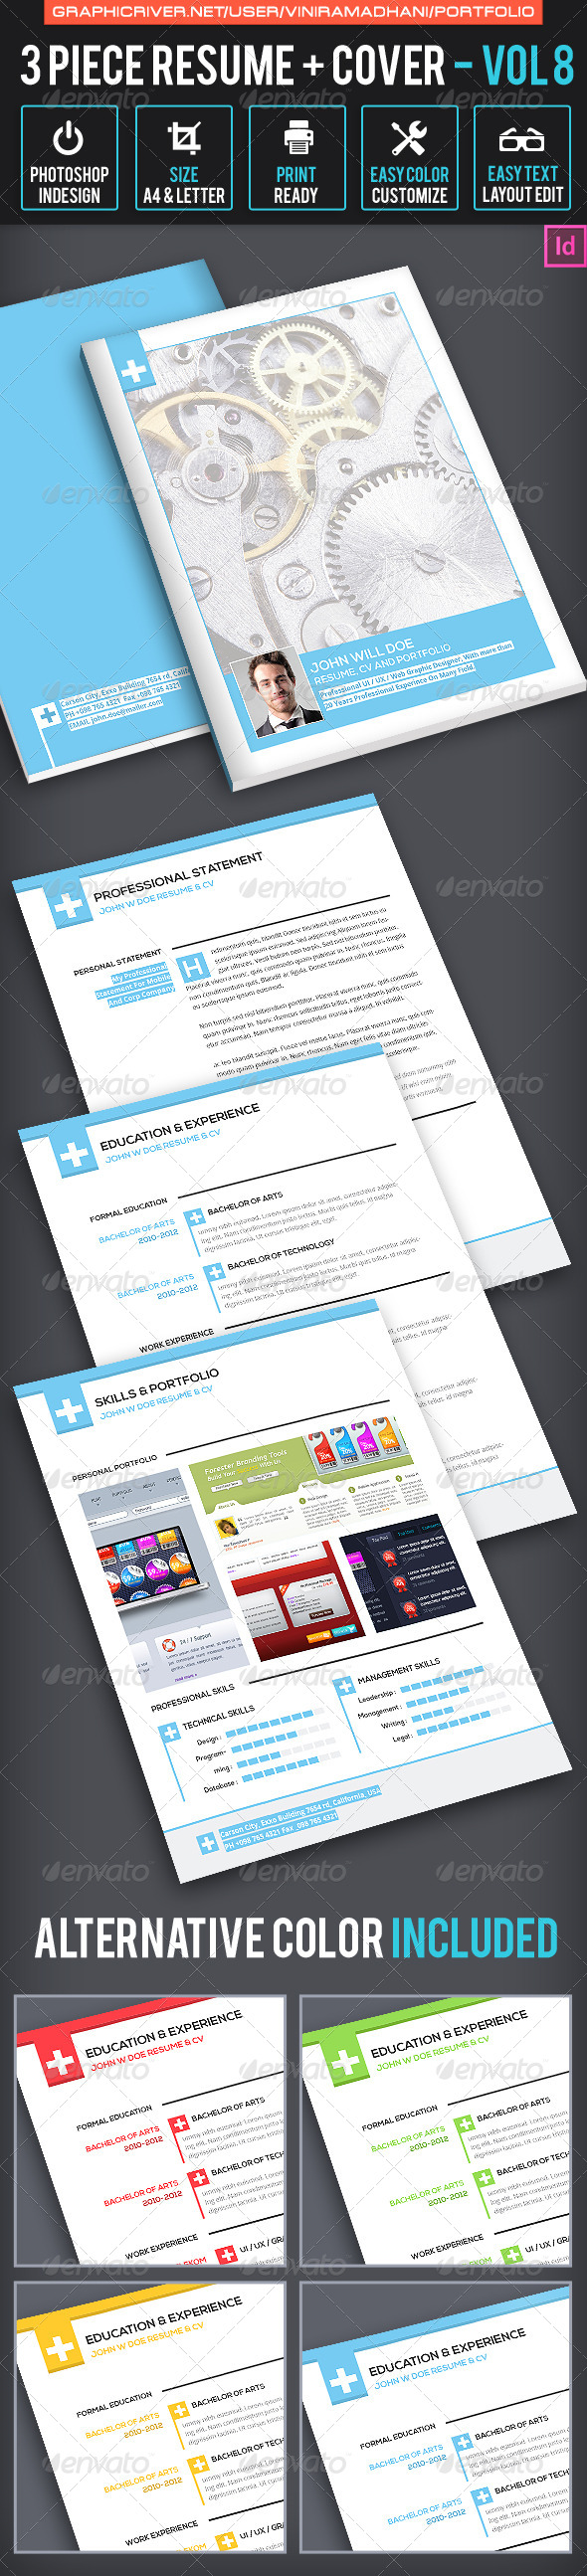 Simple Resume CV Volume 8 - Resumes Stationery